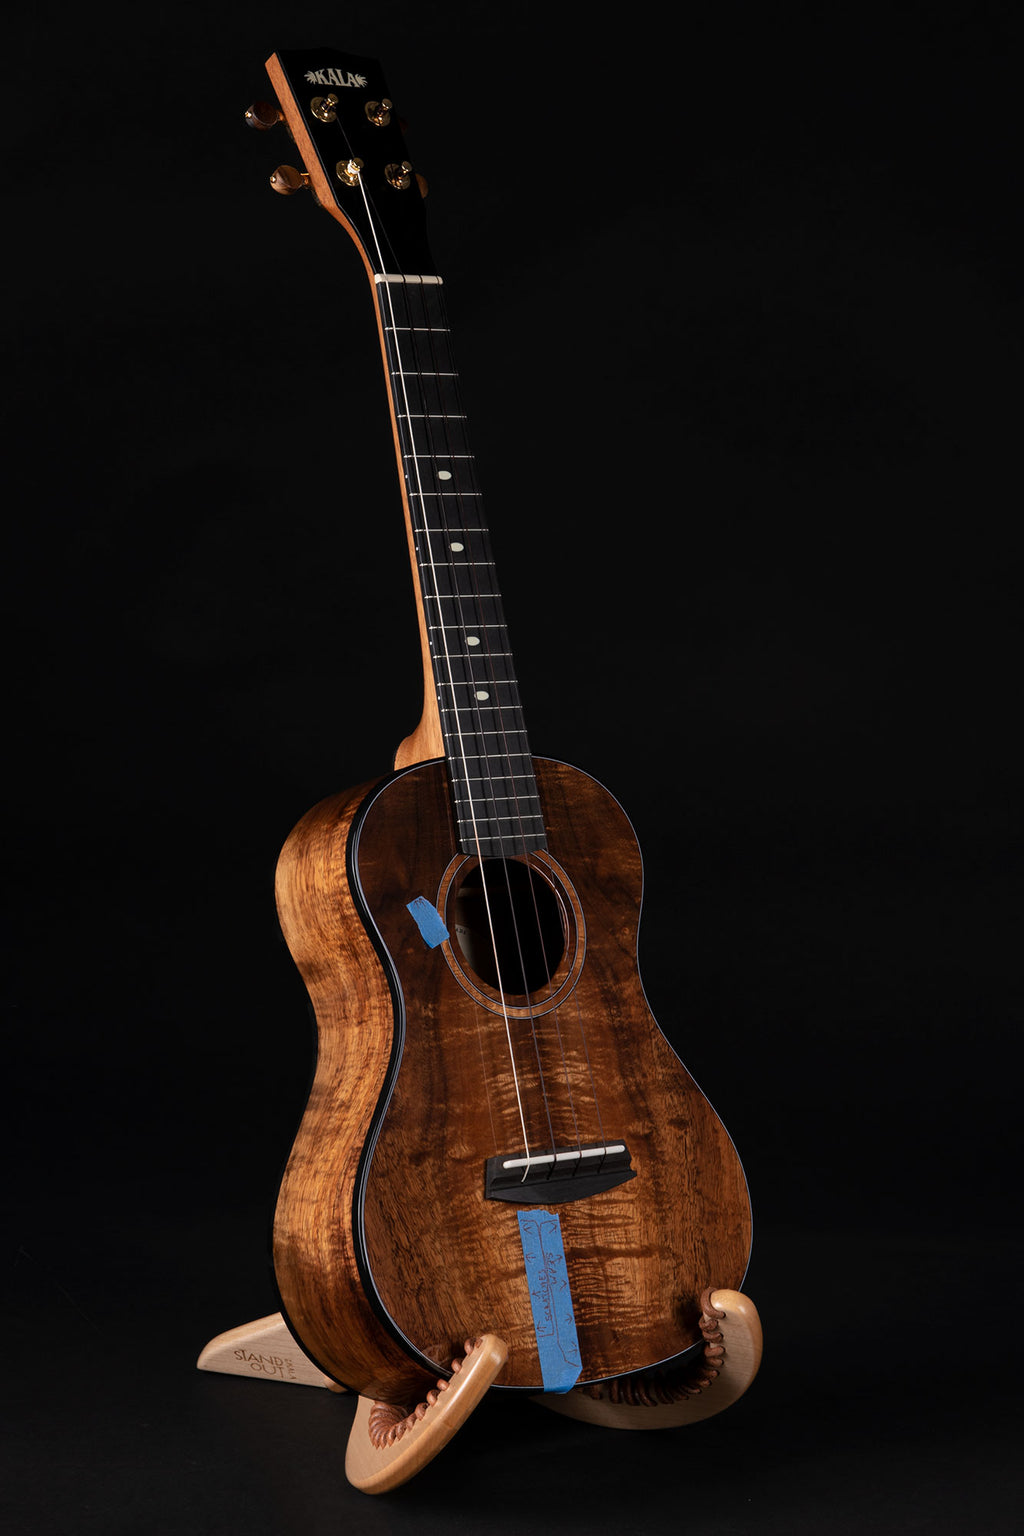 B-Stock: Gloss Hawaiian Koa Tenor Ukulele